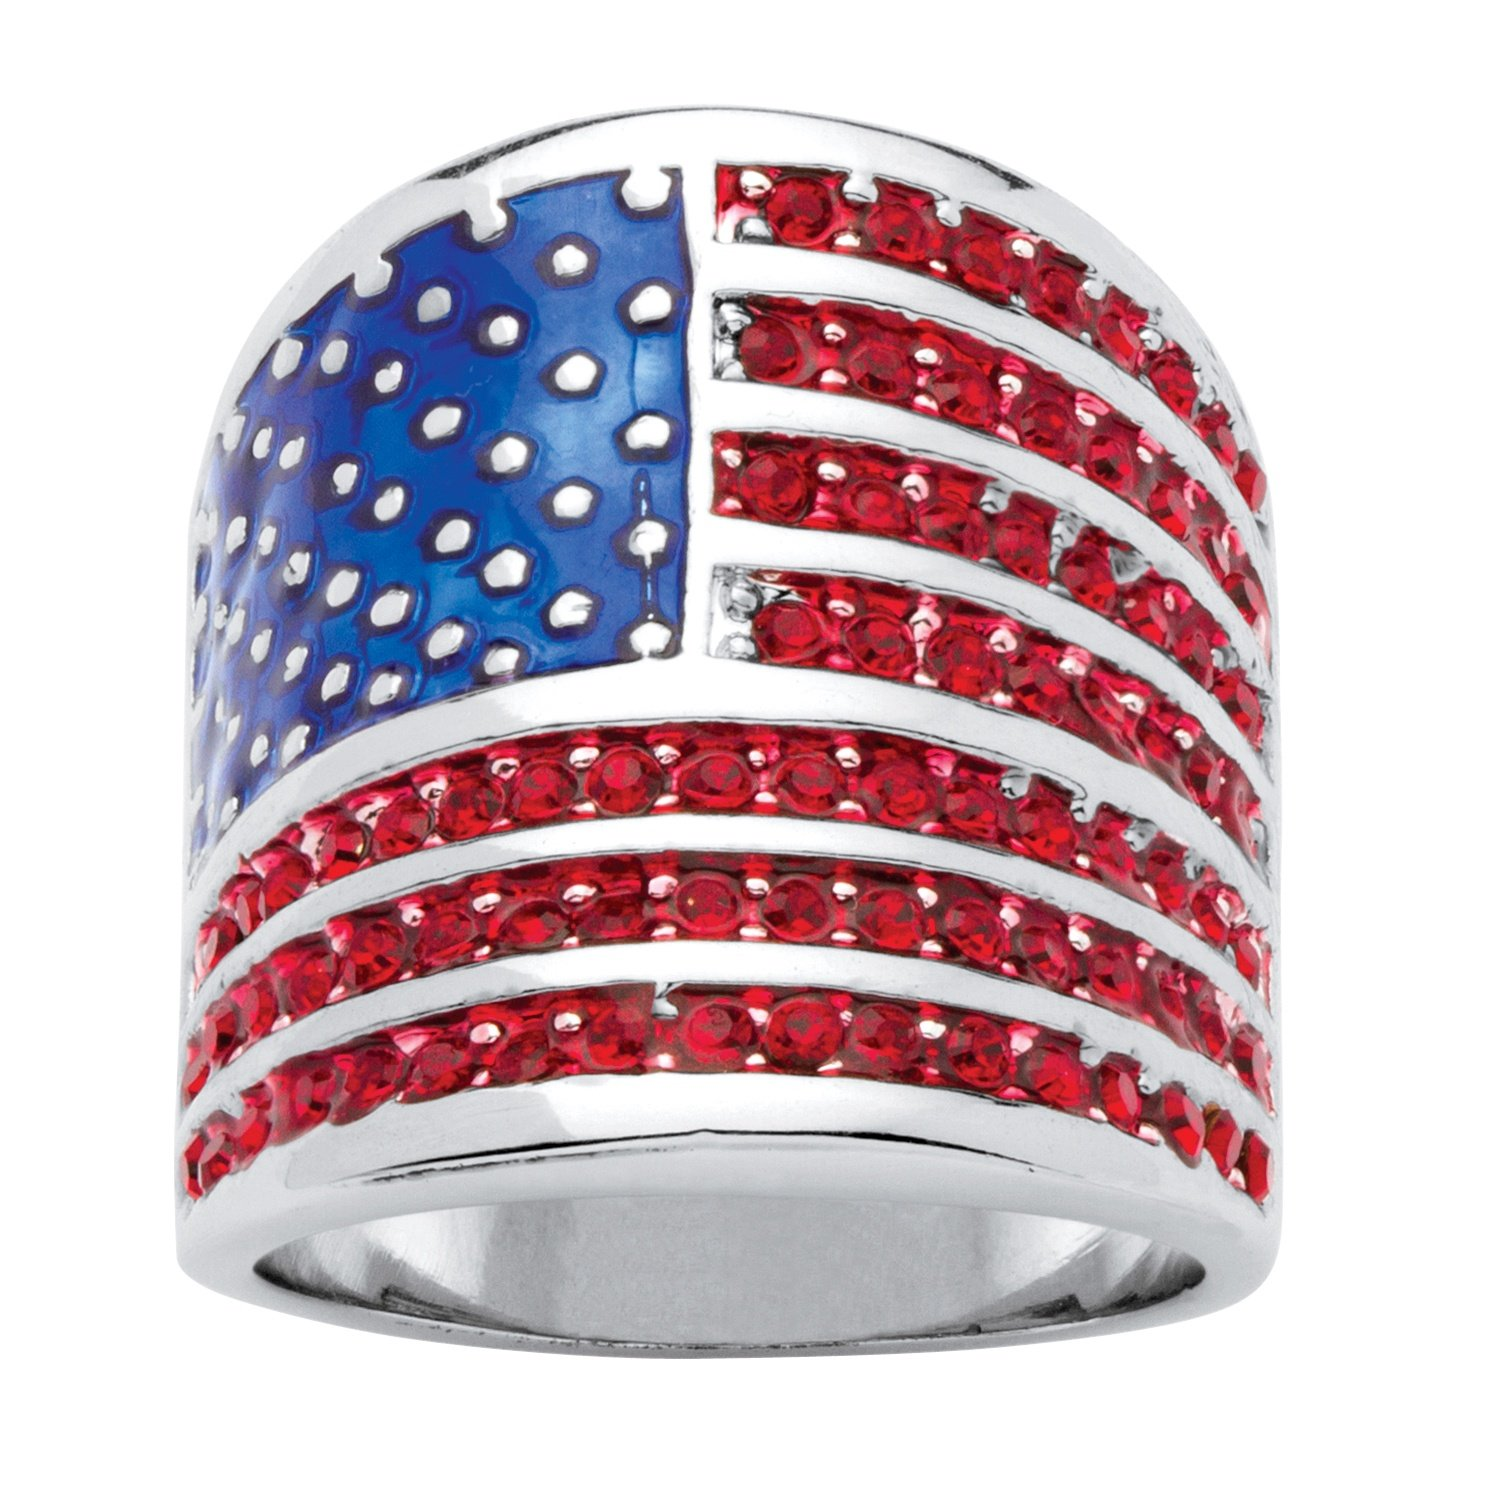 Palm Beach Jewelry Silver Tone Round Red Crystal and Enamel American Flag Ring Size 8